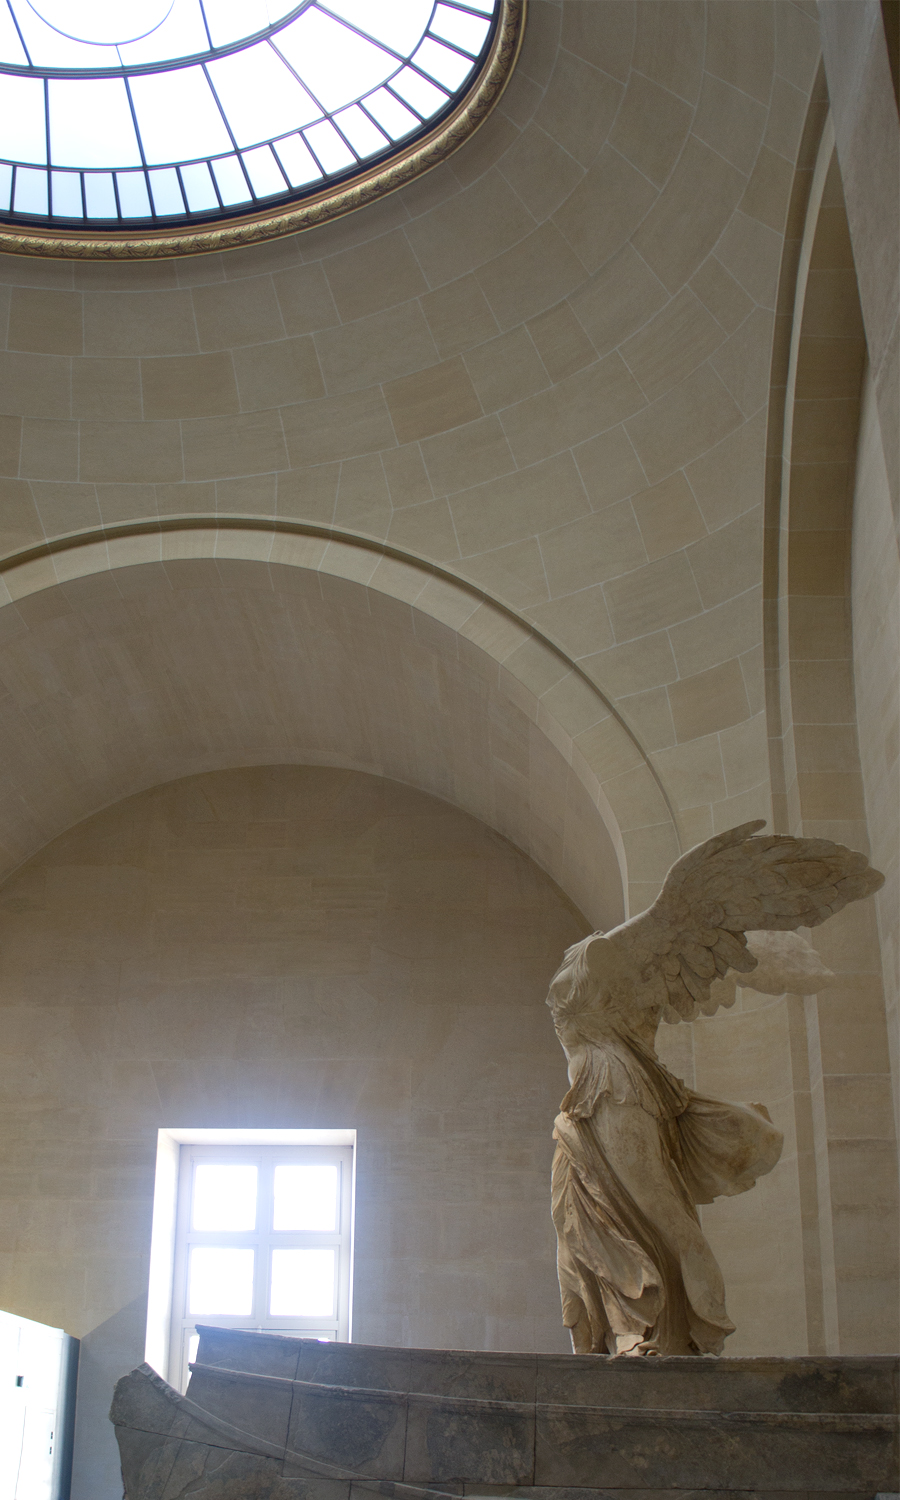 2014-louvre-museum-paris-france-02-2